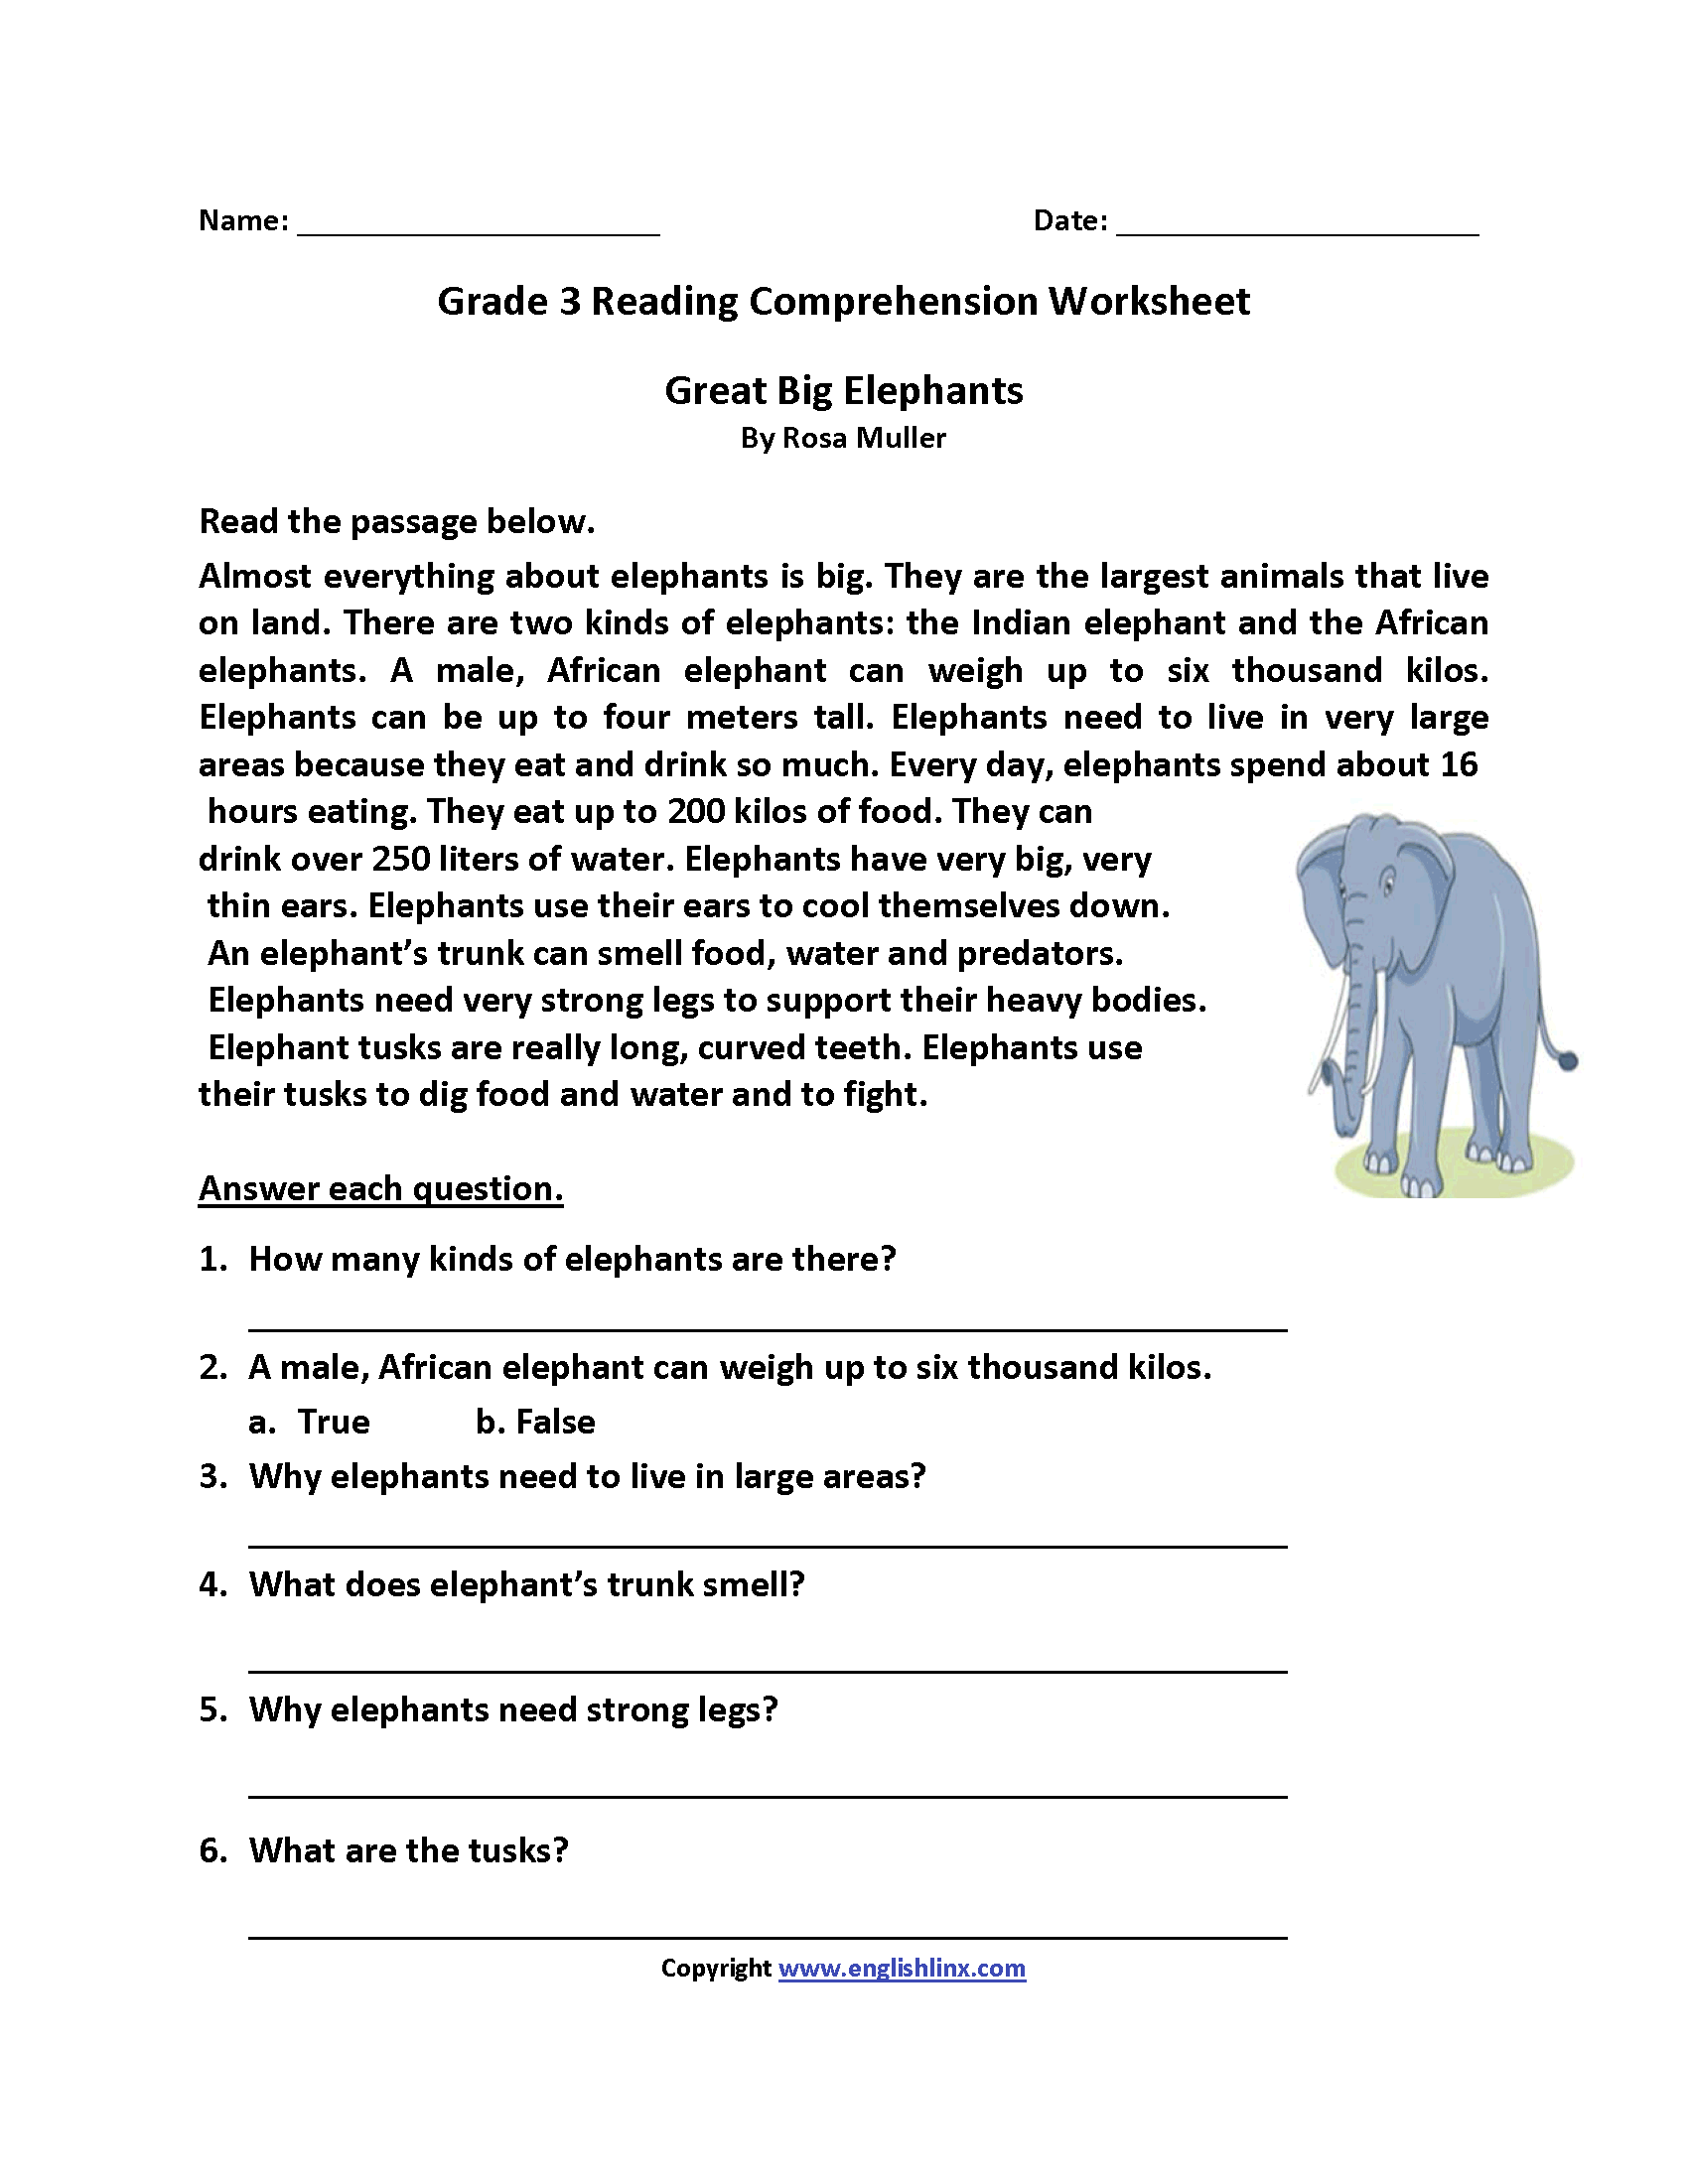 worksheet Third Grade Comprehension Worksheets Free reading comprehension worksheets for third grade free re d g w ksheets gr de ksheets